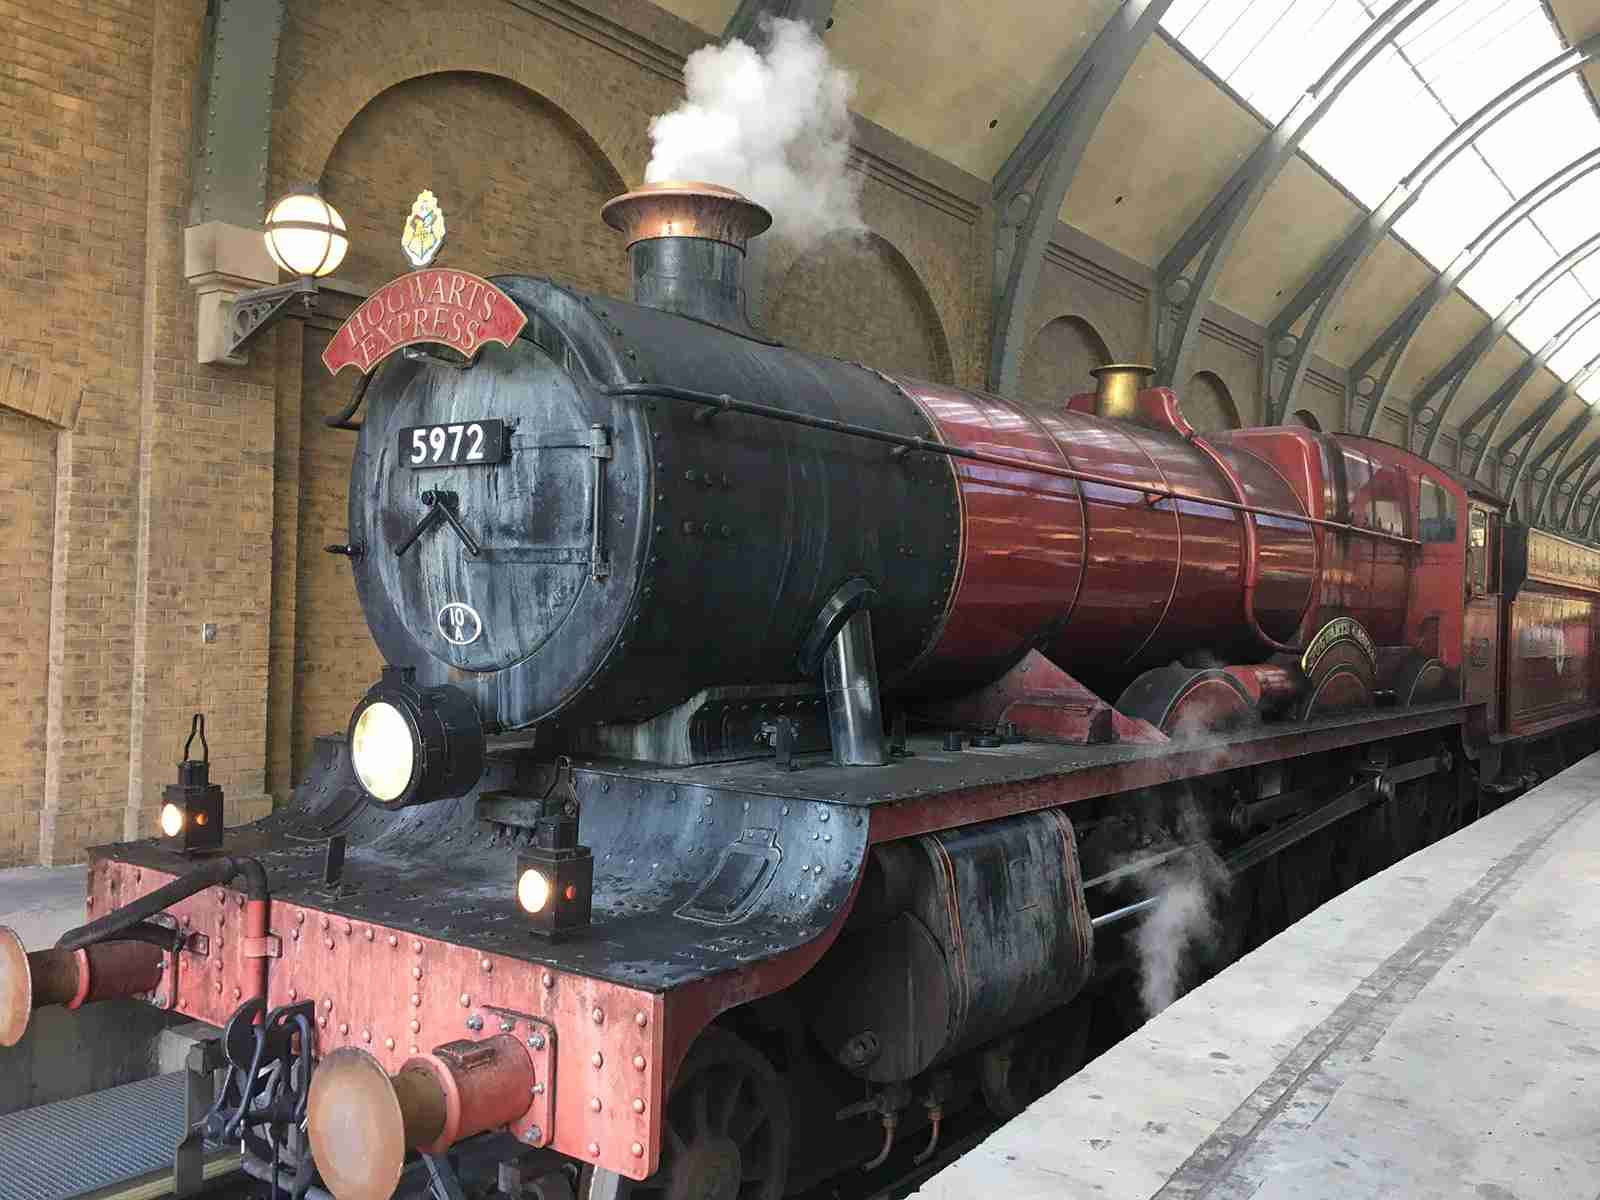 Hogwarts Express. (Photo by Andrea M. Rotondo/The Points Guy.)